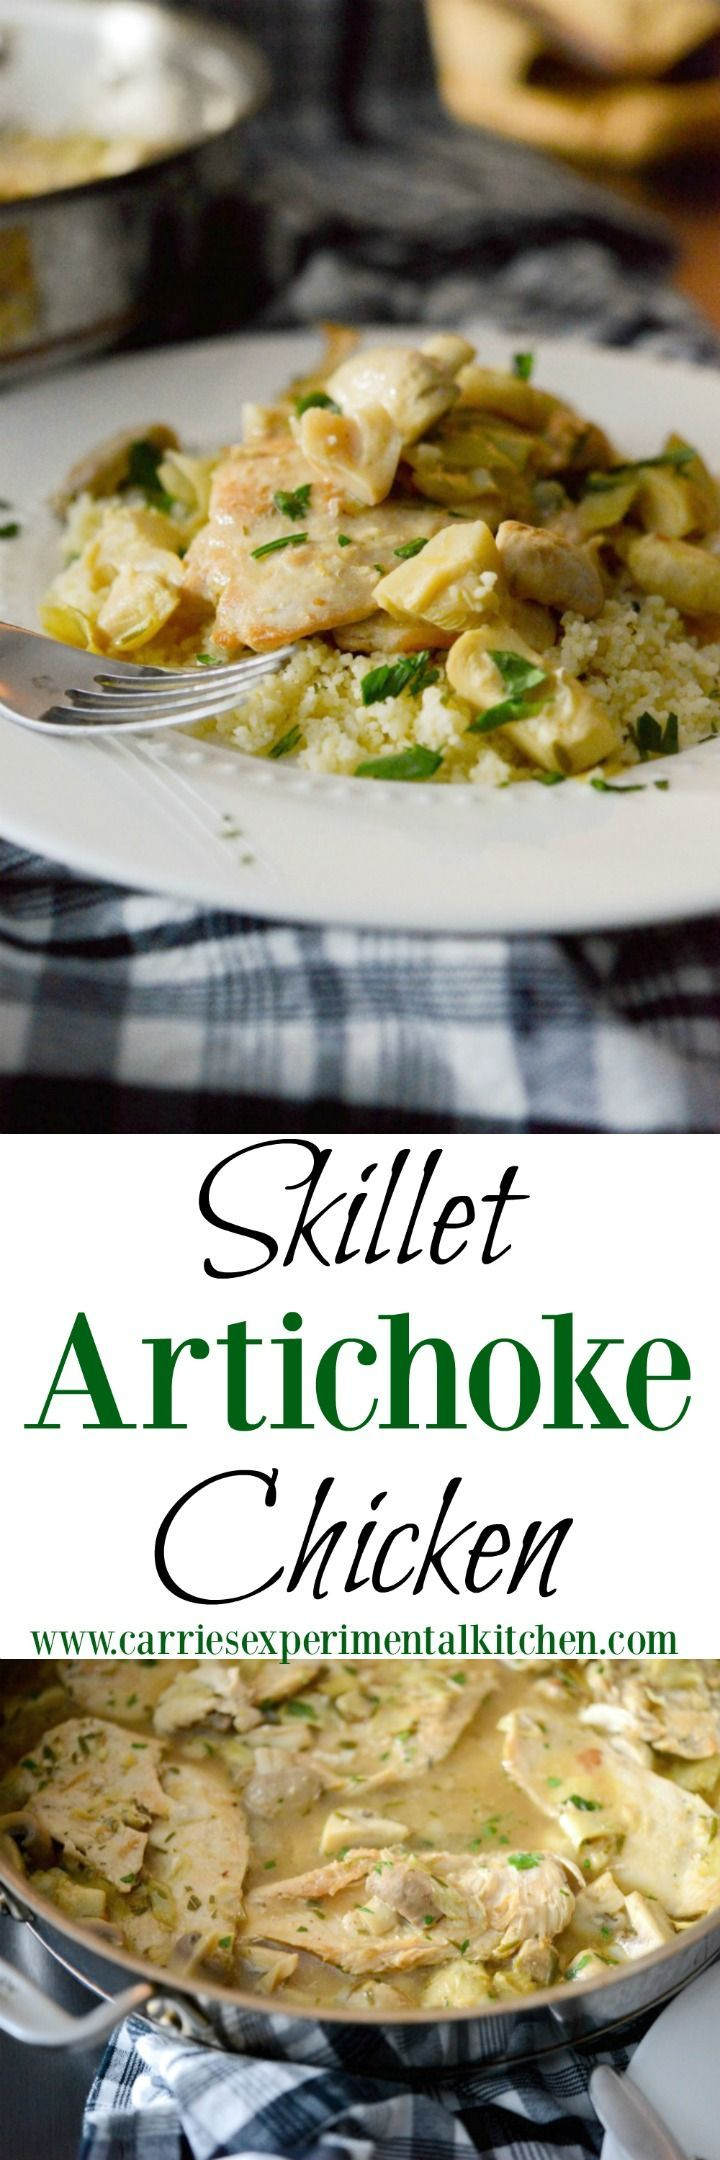 Skillet Artichoke Chicken made with boneless chicken breasts, artichoke hearts, garlic, rosemary and mushrooms in a light, lemony broth is a quick and easy, low fat meal that's ready in under 30 minutes. Perfect for busy weeknights or weekend get togethers.